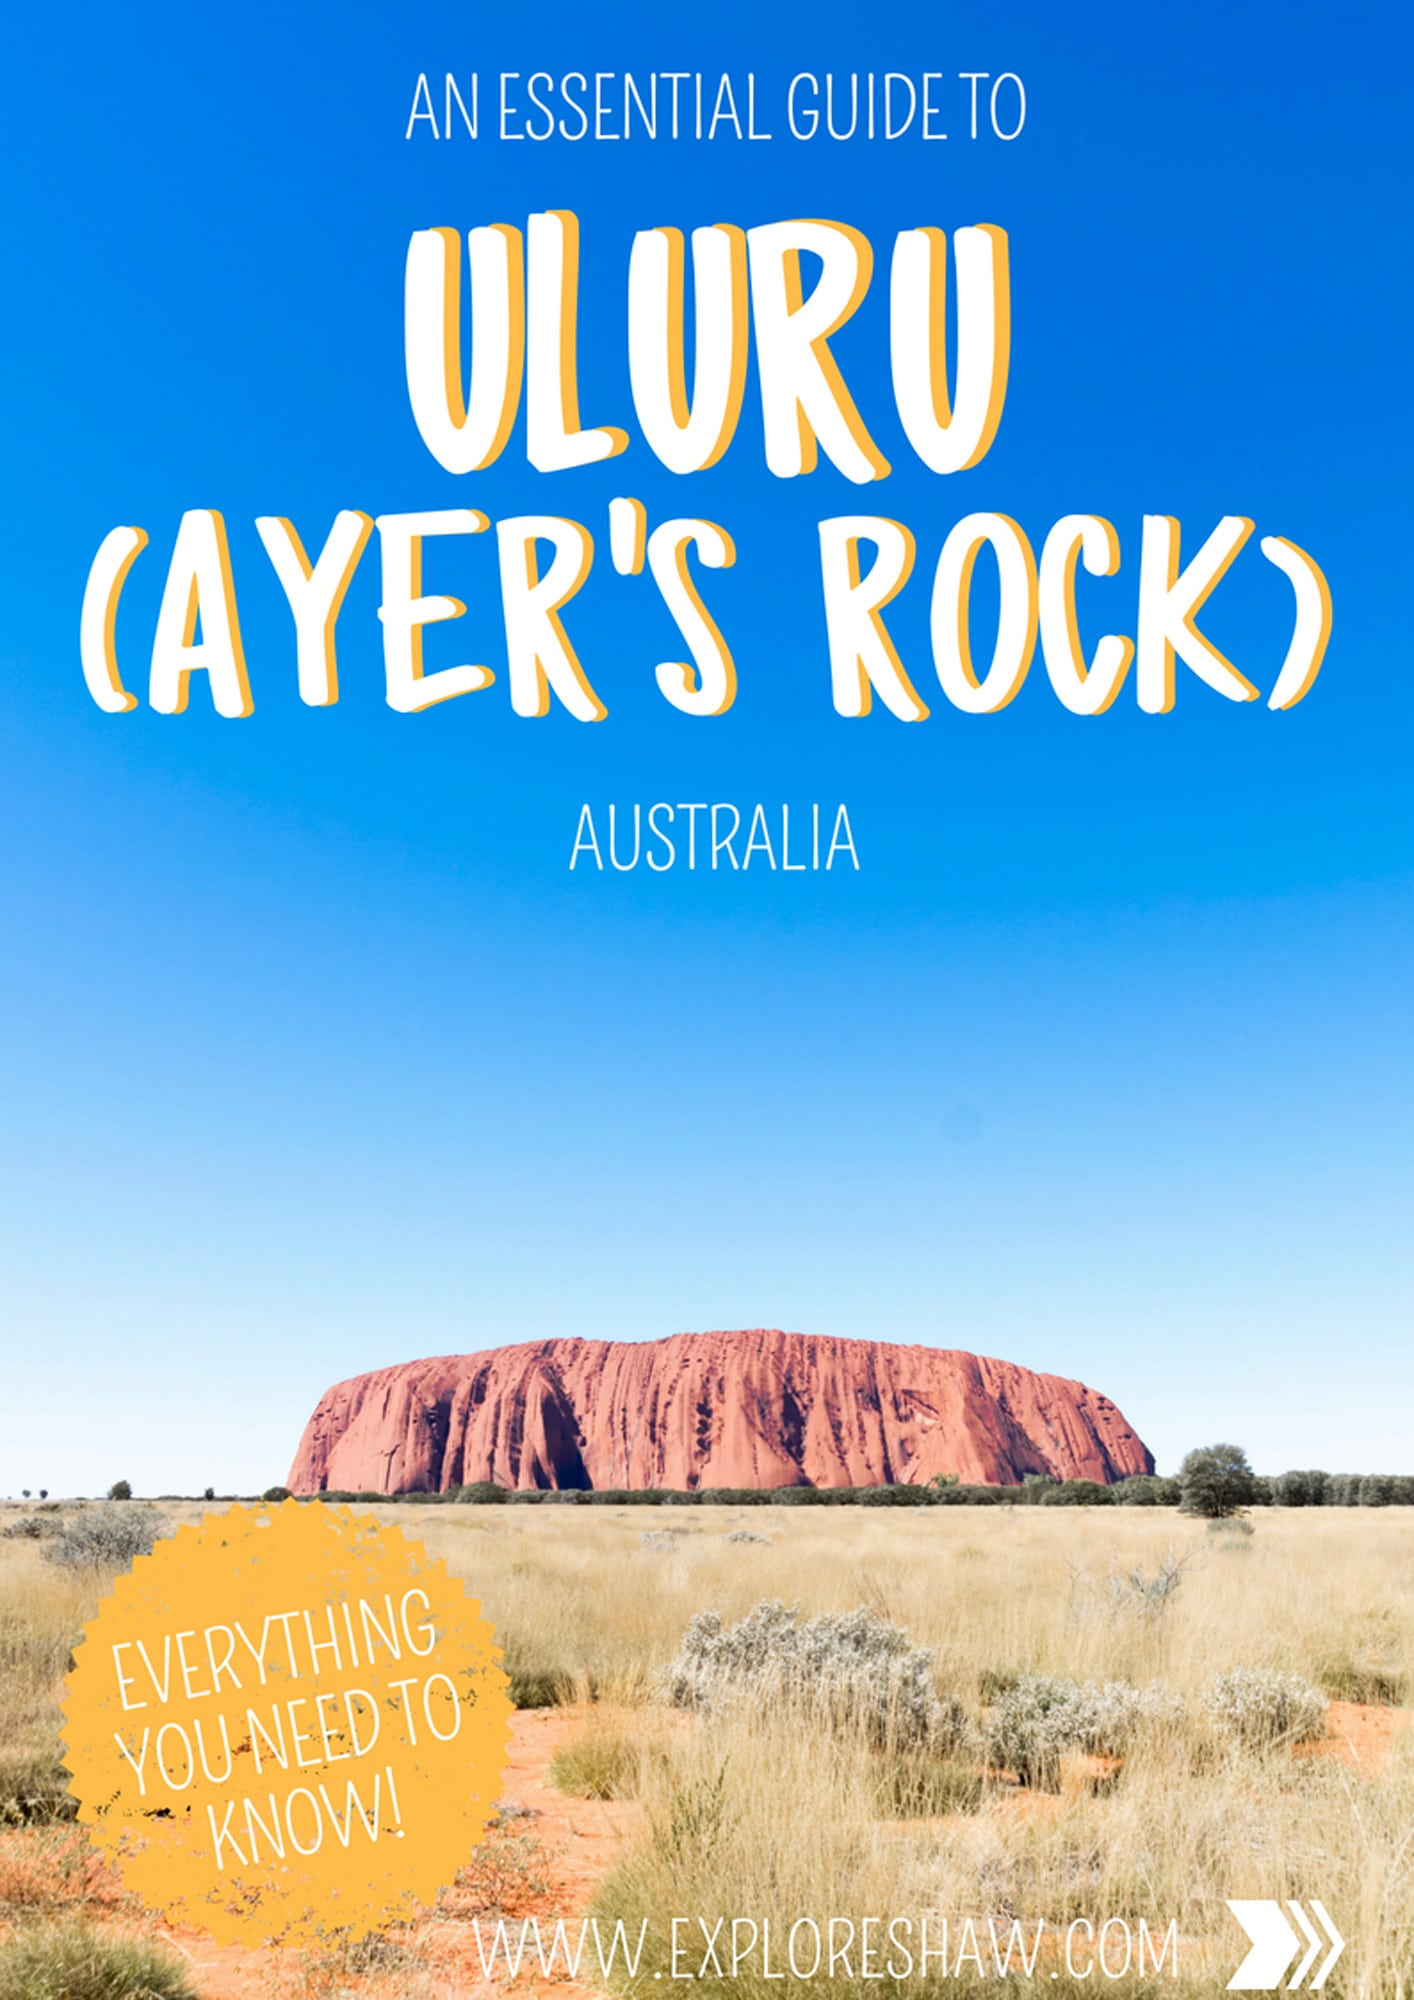 AN ESSENTIAL GUIDE TO ULURU